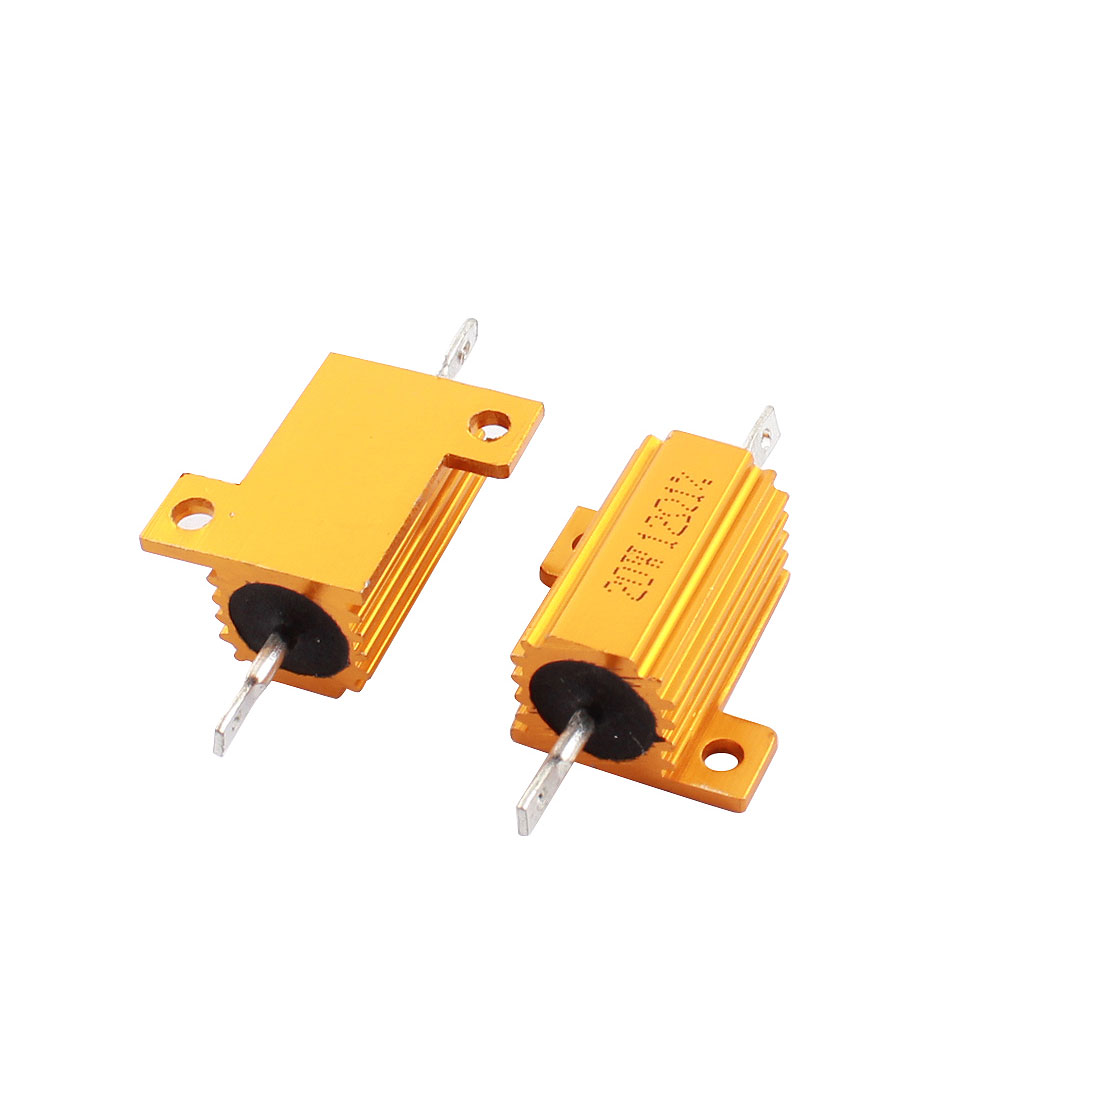 2pcs 20W Power 12 Ohm Resistance Value 1% Tolerance Yellow Aluminum Housed Clad Resistors